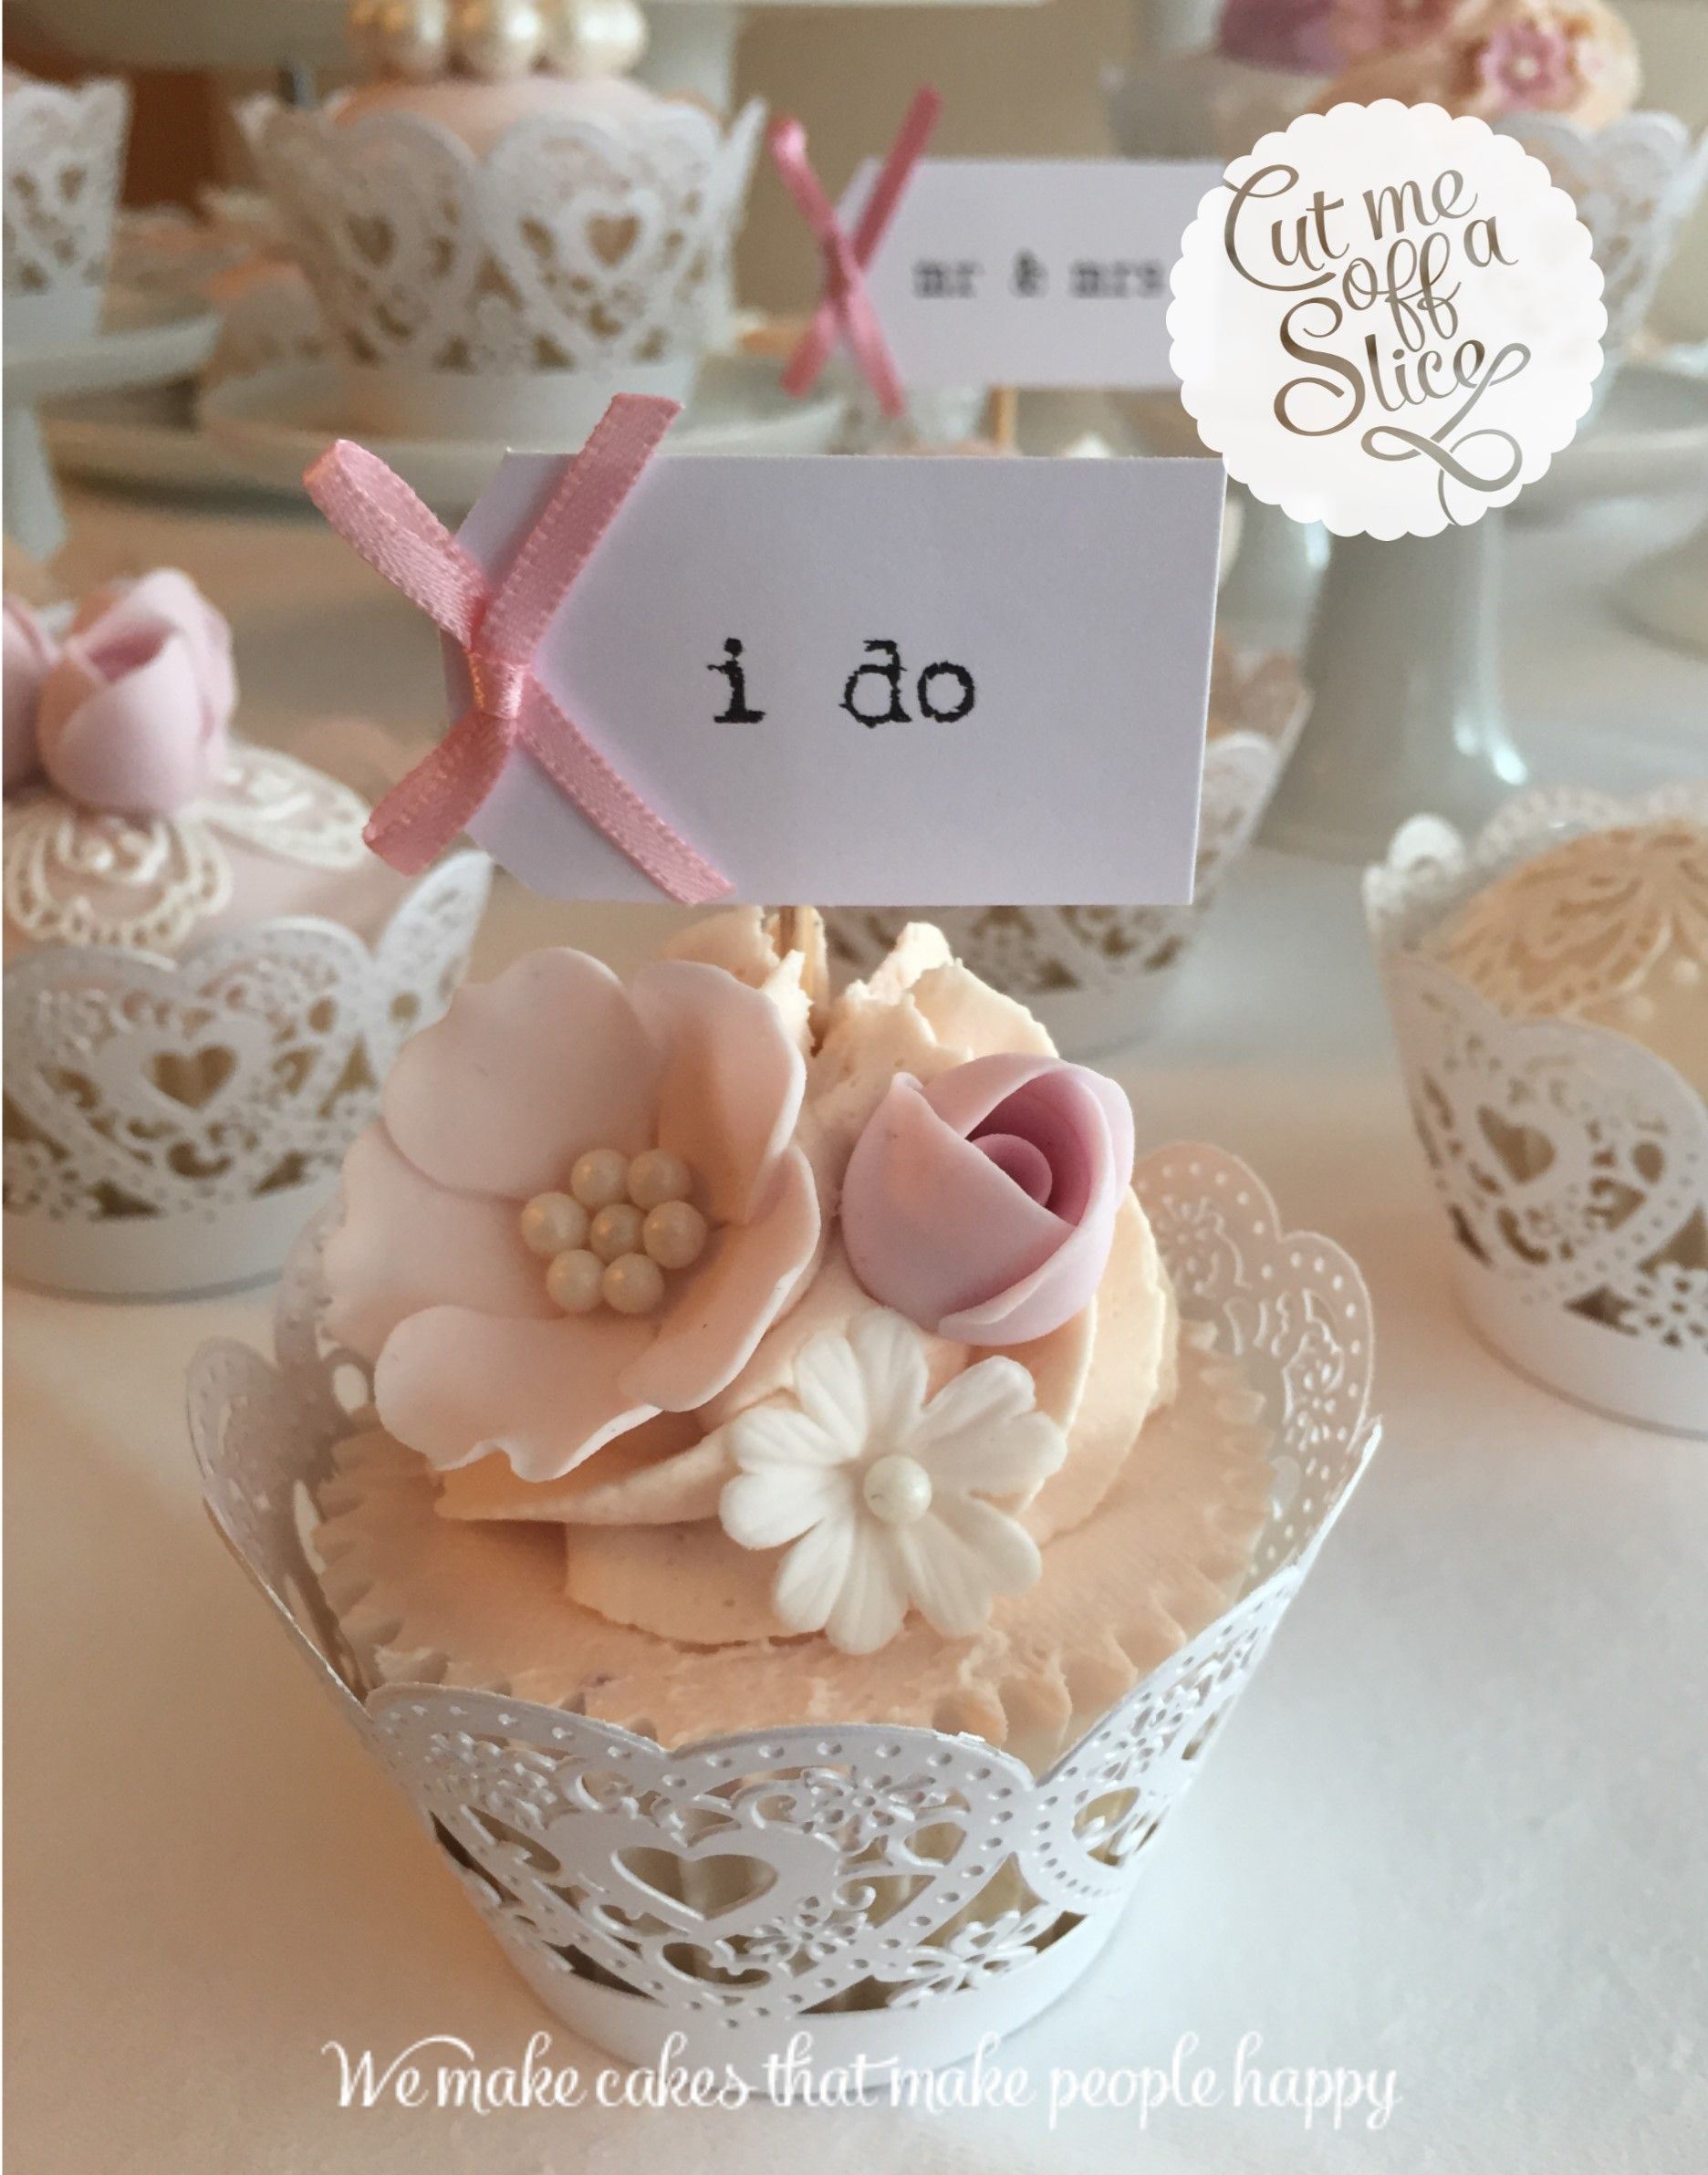 Hochzeit Cupcakes Cup Cakes Wedding Cakes Cut Me Off A Slice The Cake Makers